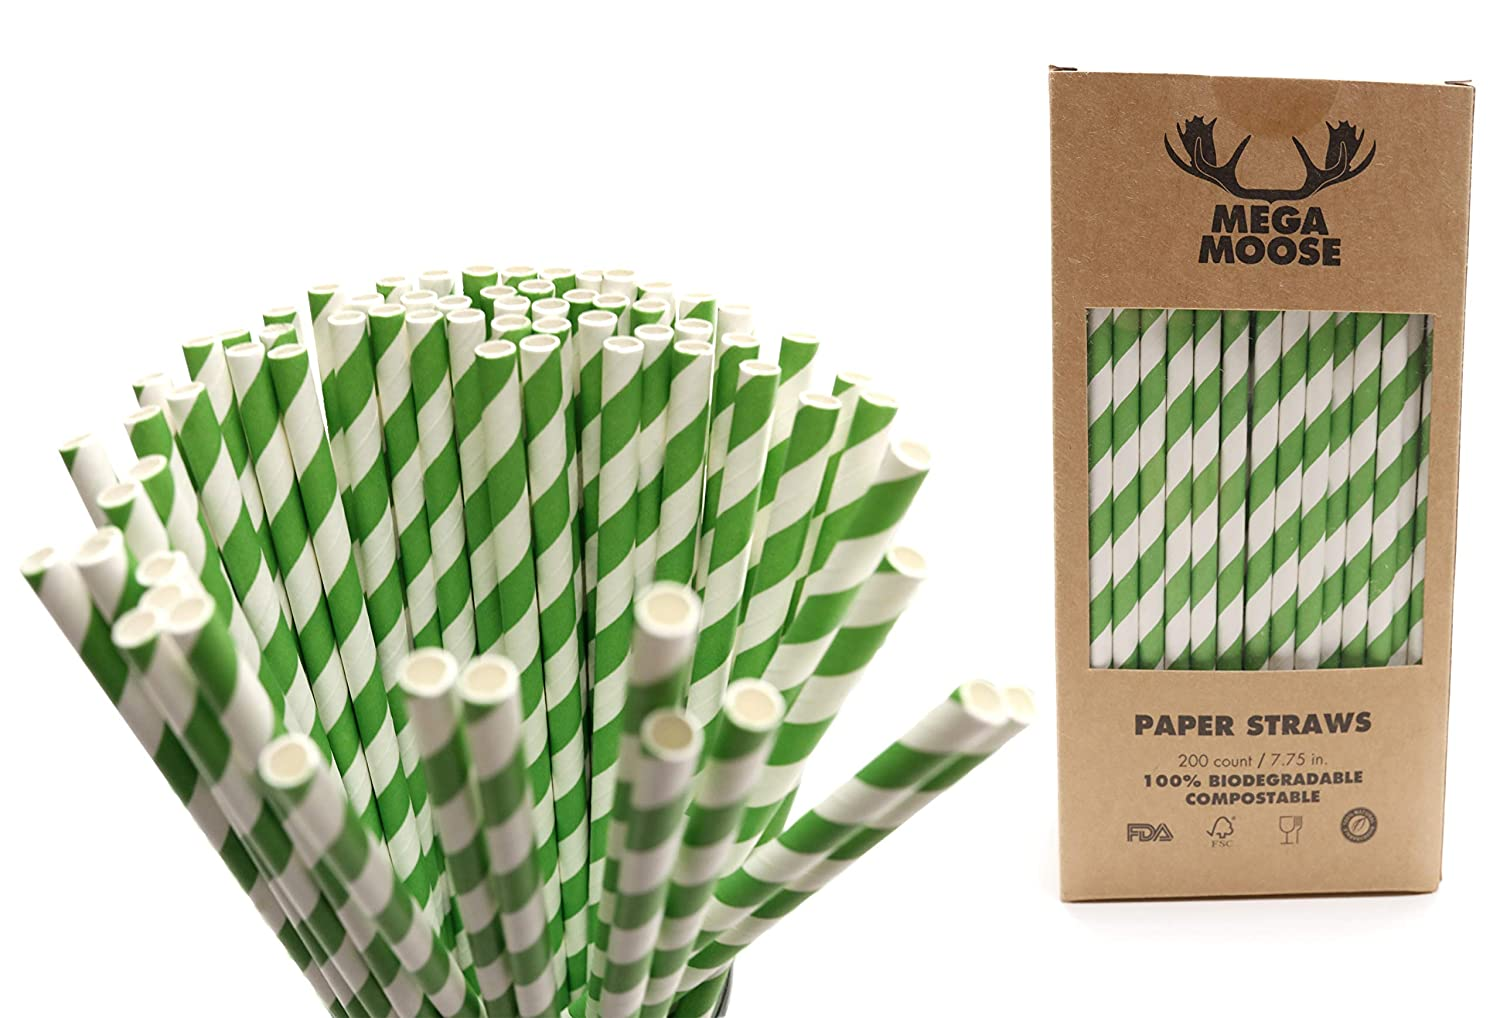 Mega Moose Biodegradable Paper Straws - 200 ct. Striped Paper Drinking Straws with Ultra Compost - Bulk Paper Straws for Wedding Decorations, Smoothies, Bridal Showers, and Baby Showers (Green)